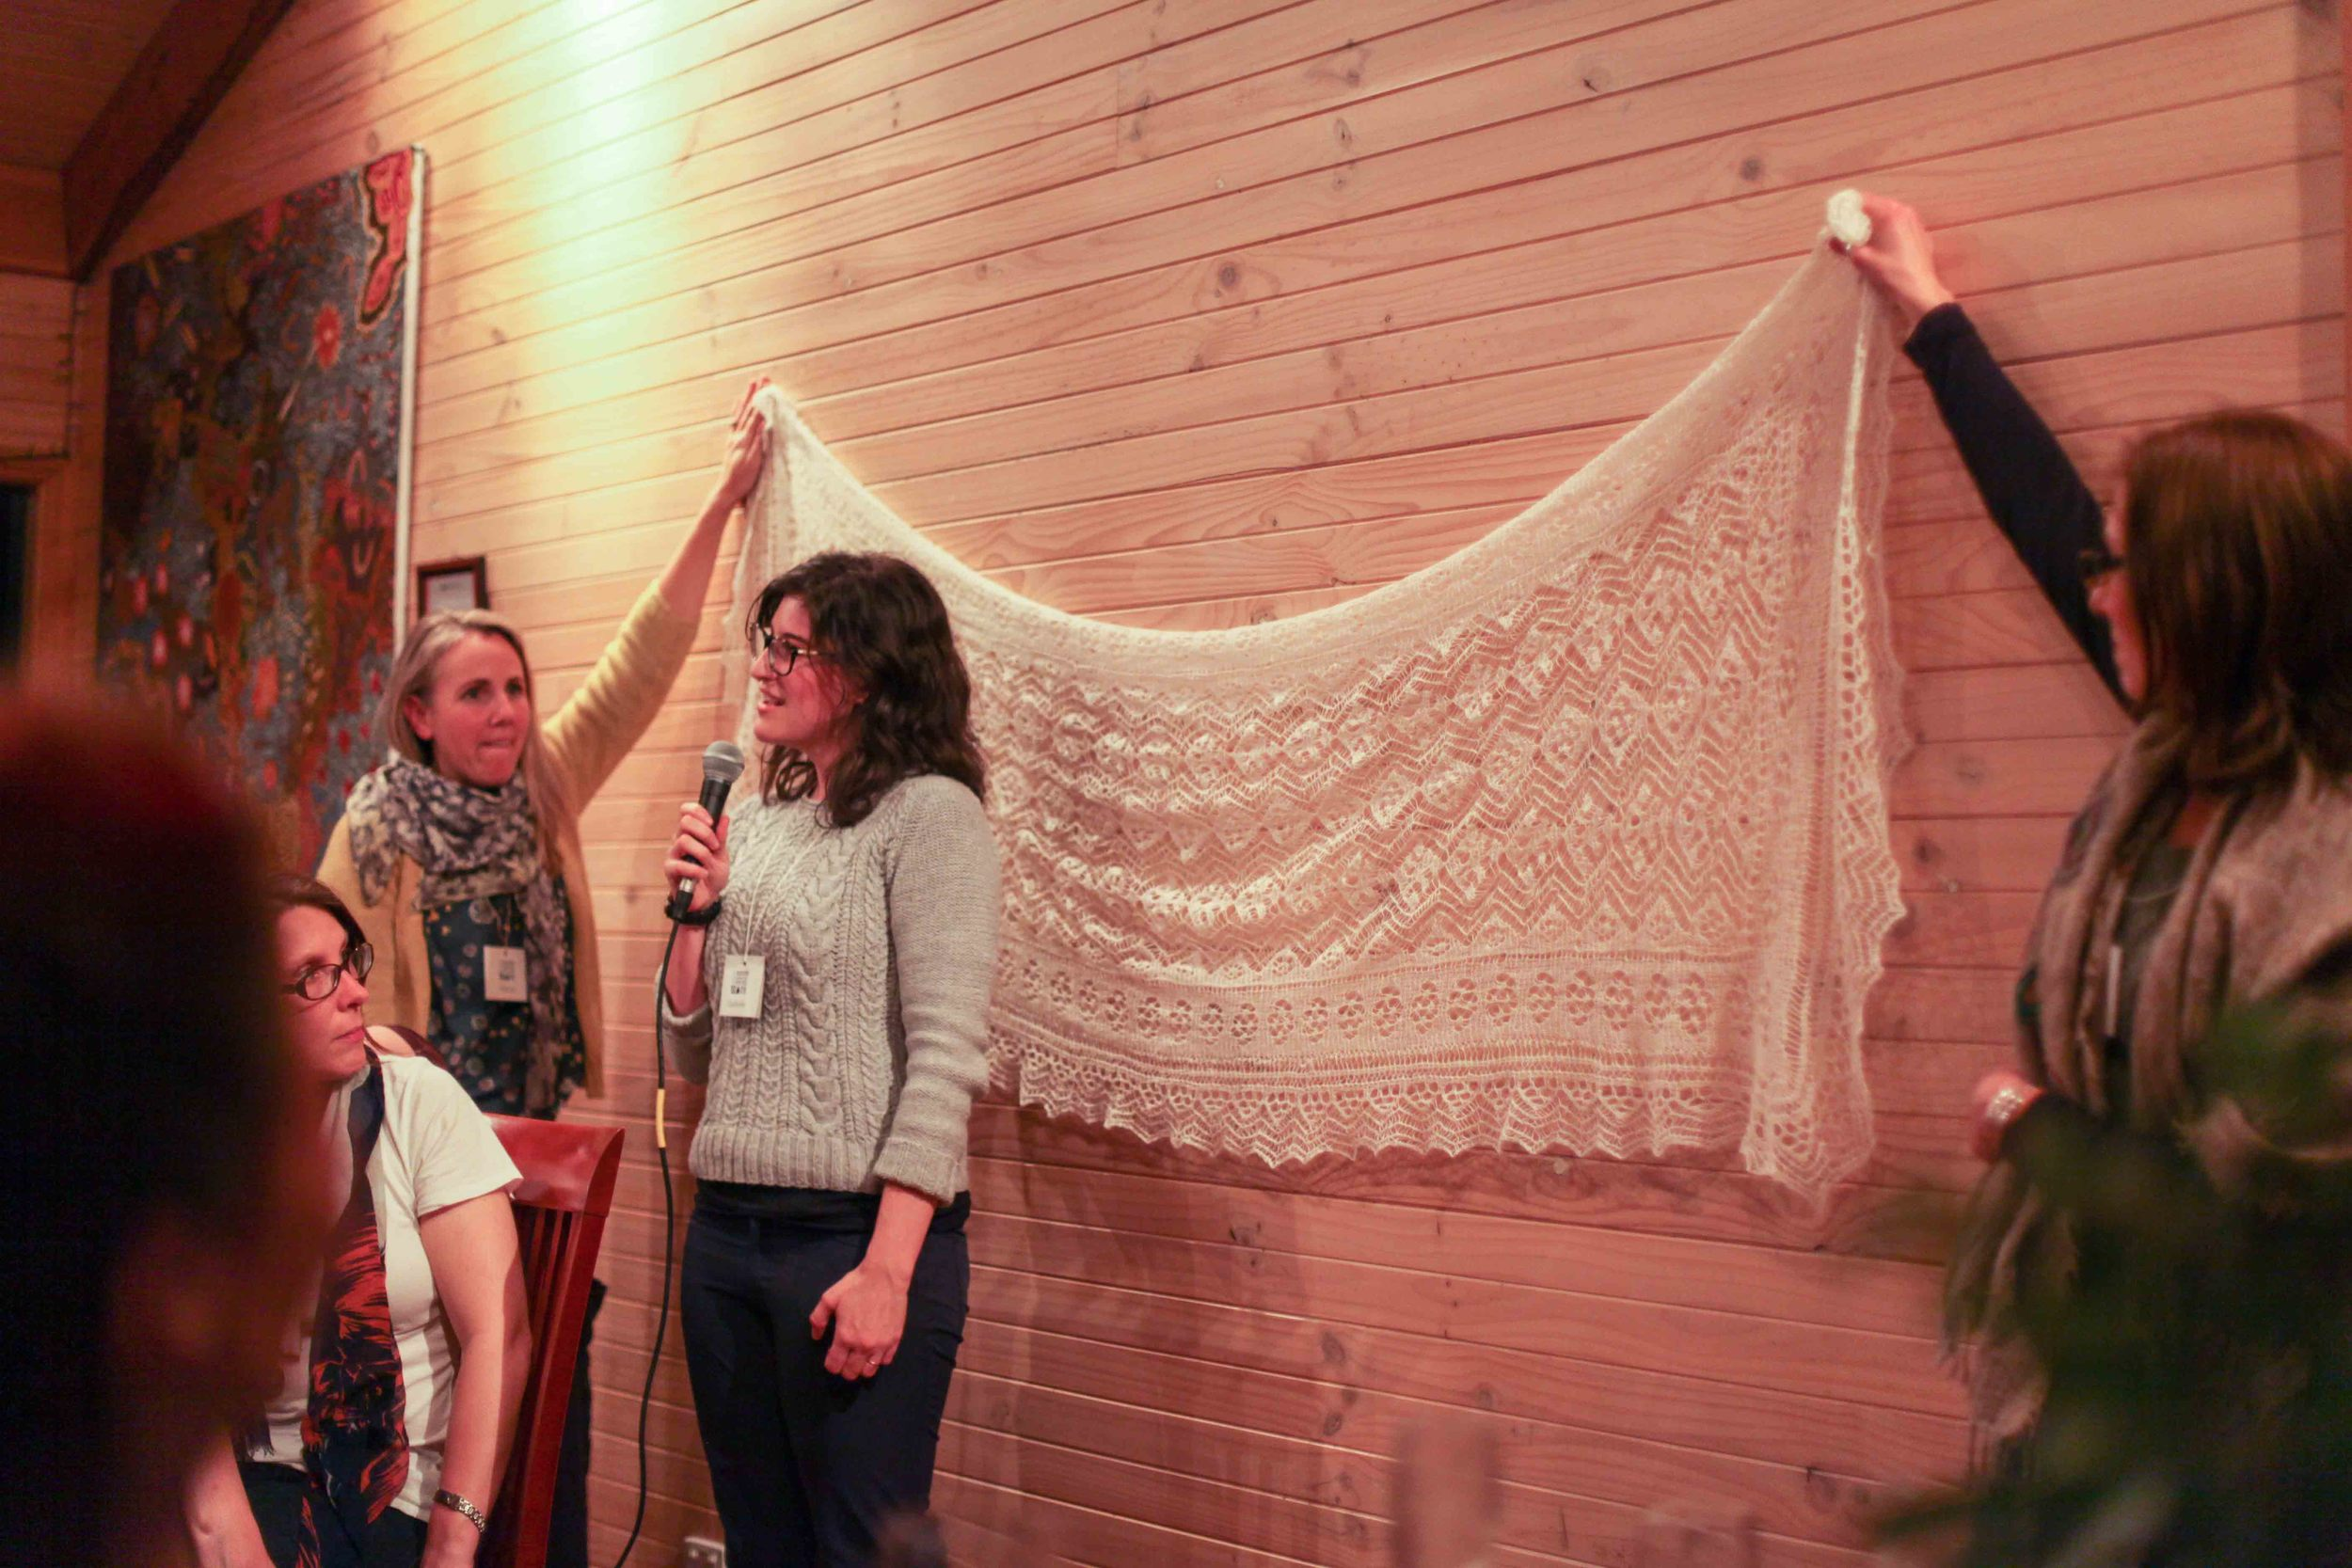 Ophelie introducing herself and showing us her magical wedding shawl.